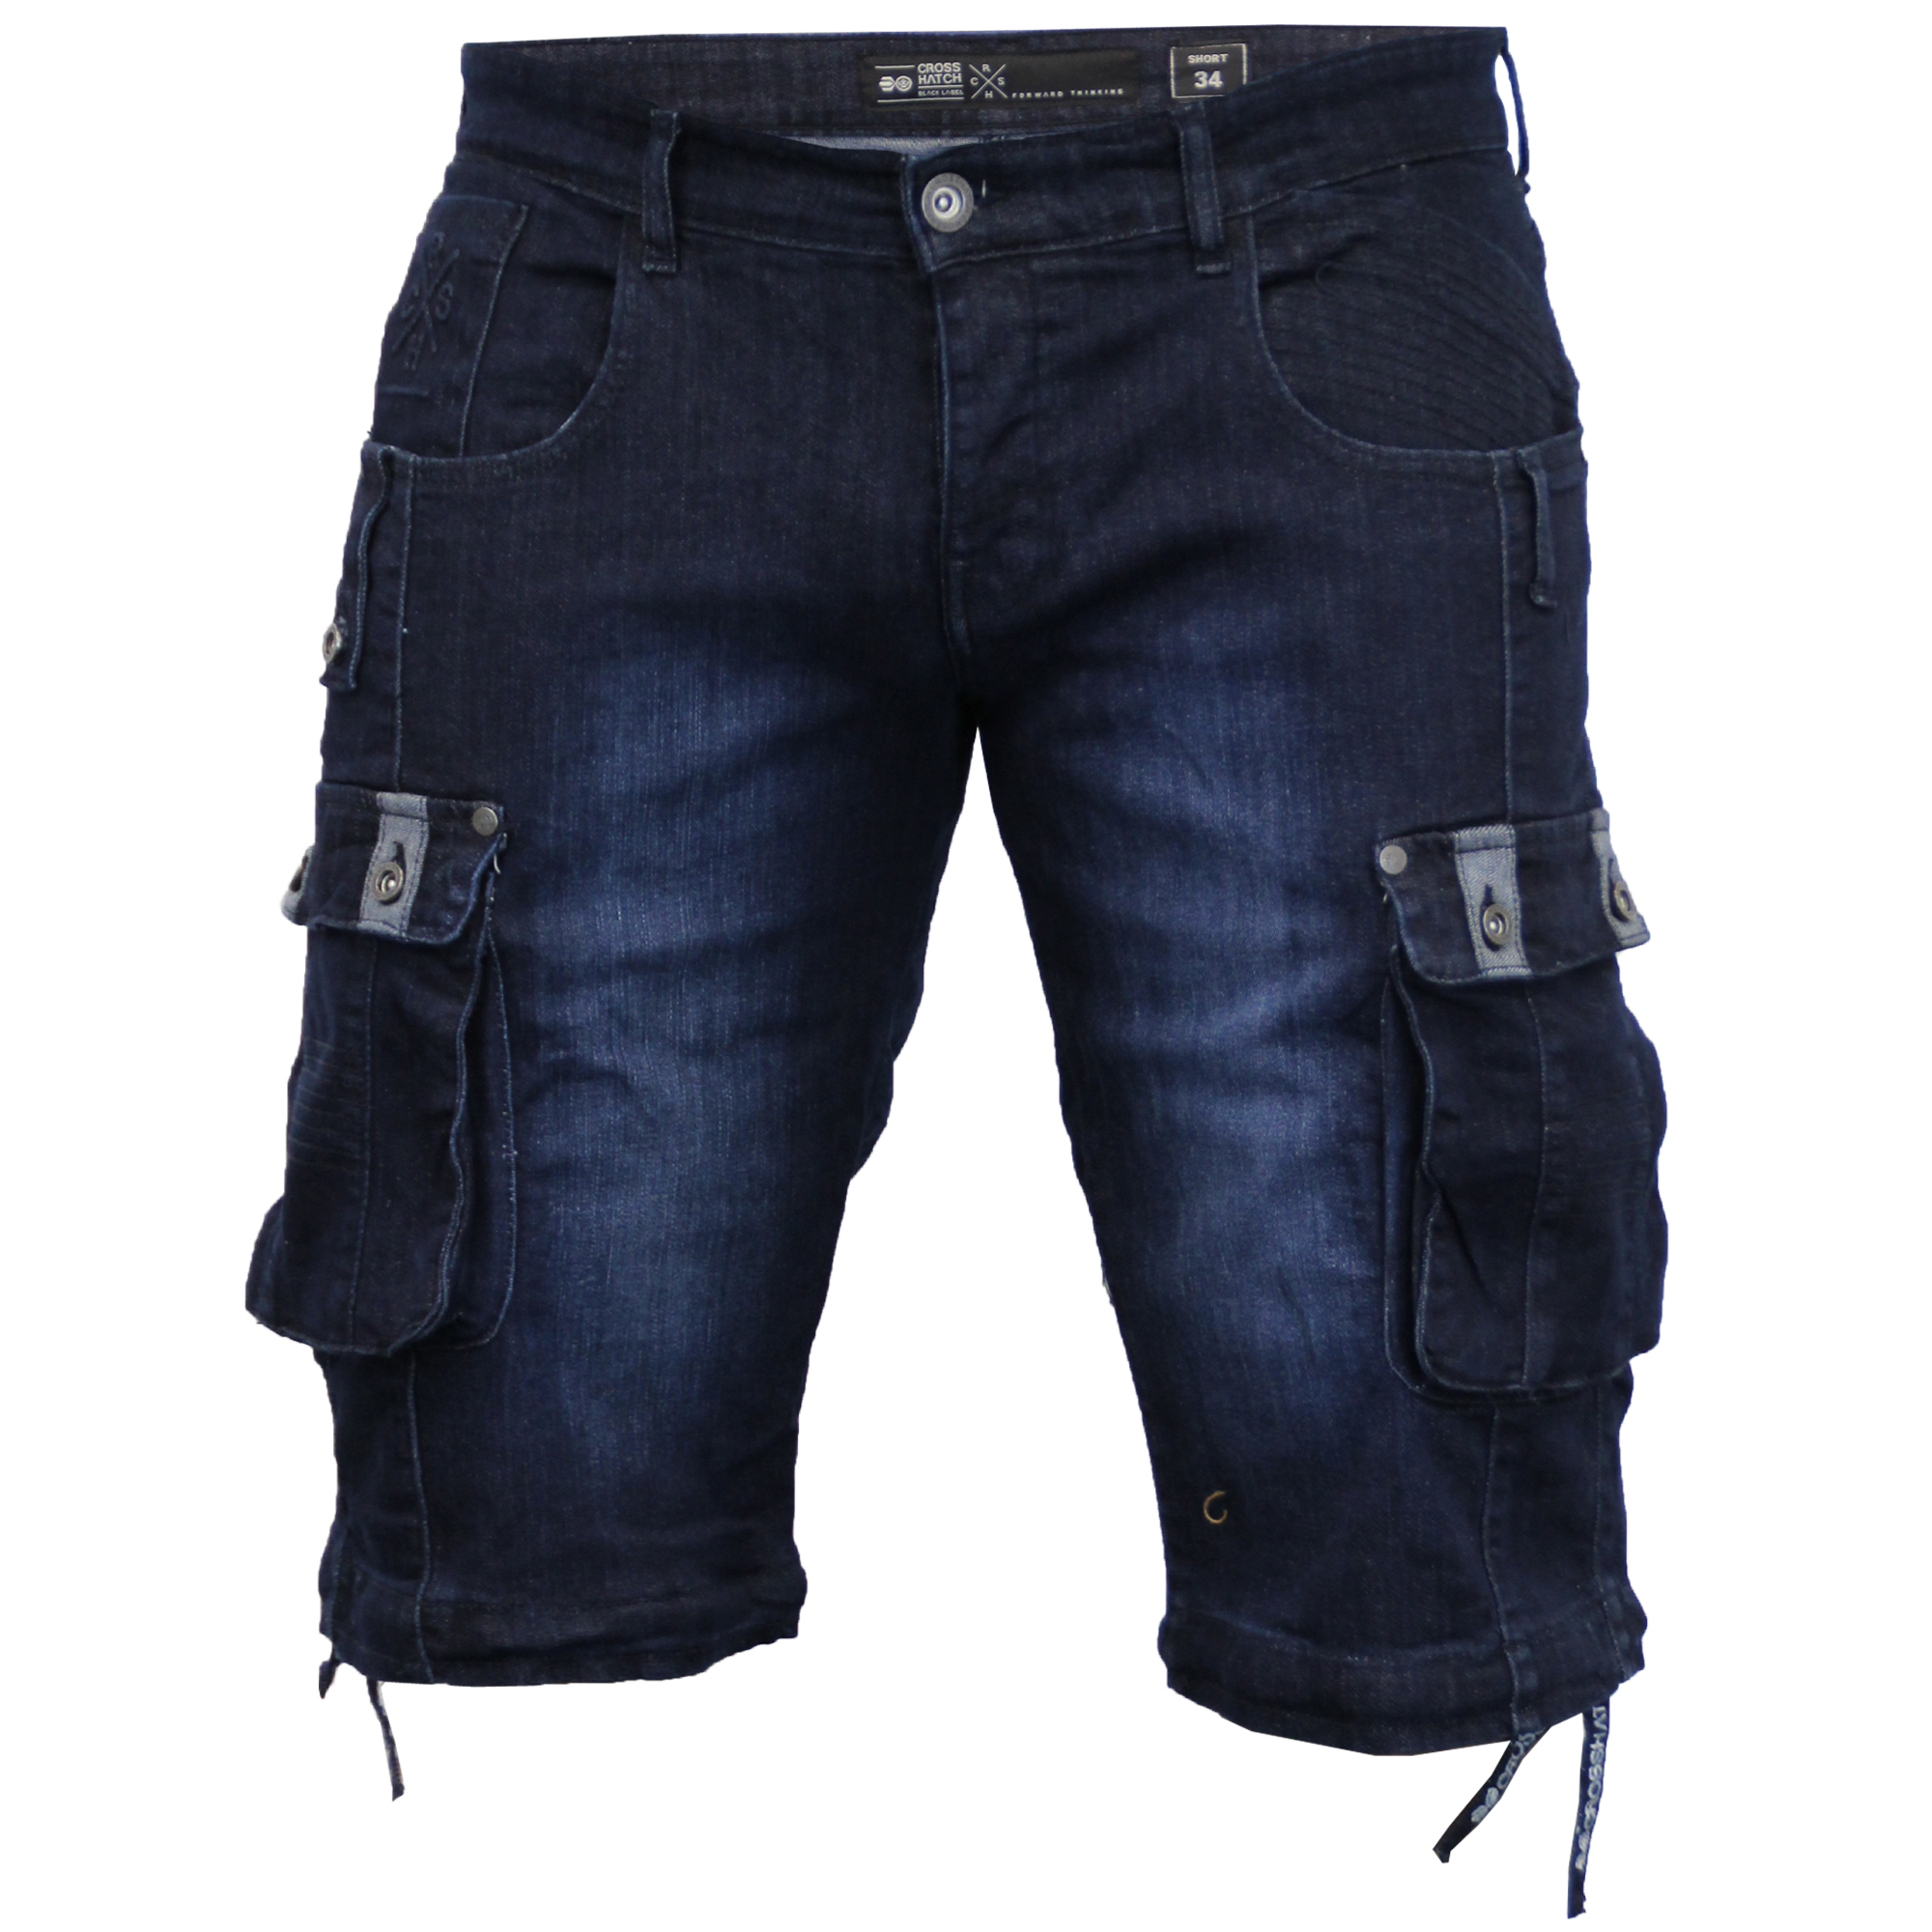 herren denim knielang cargo shorts von crosshatch ebay. Black Bedroom Furniture Sets. Home Design Ideas